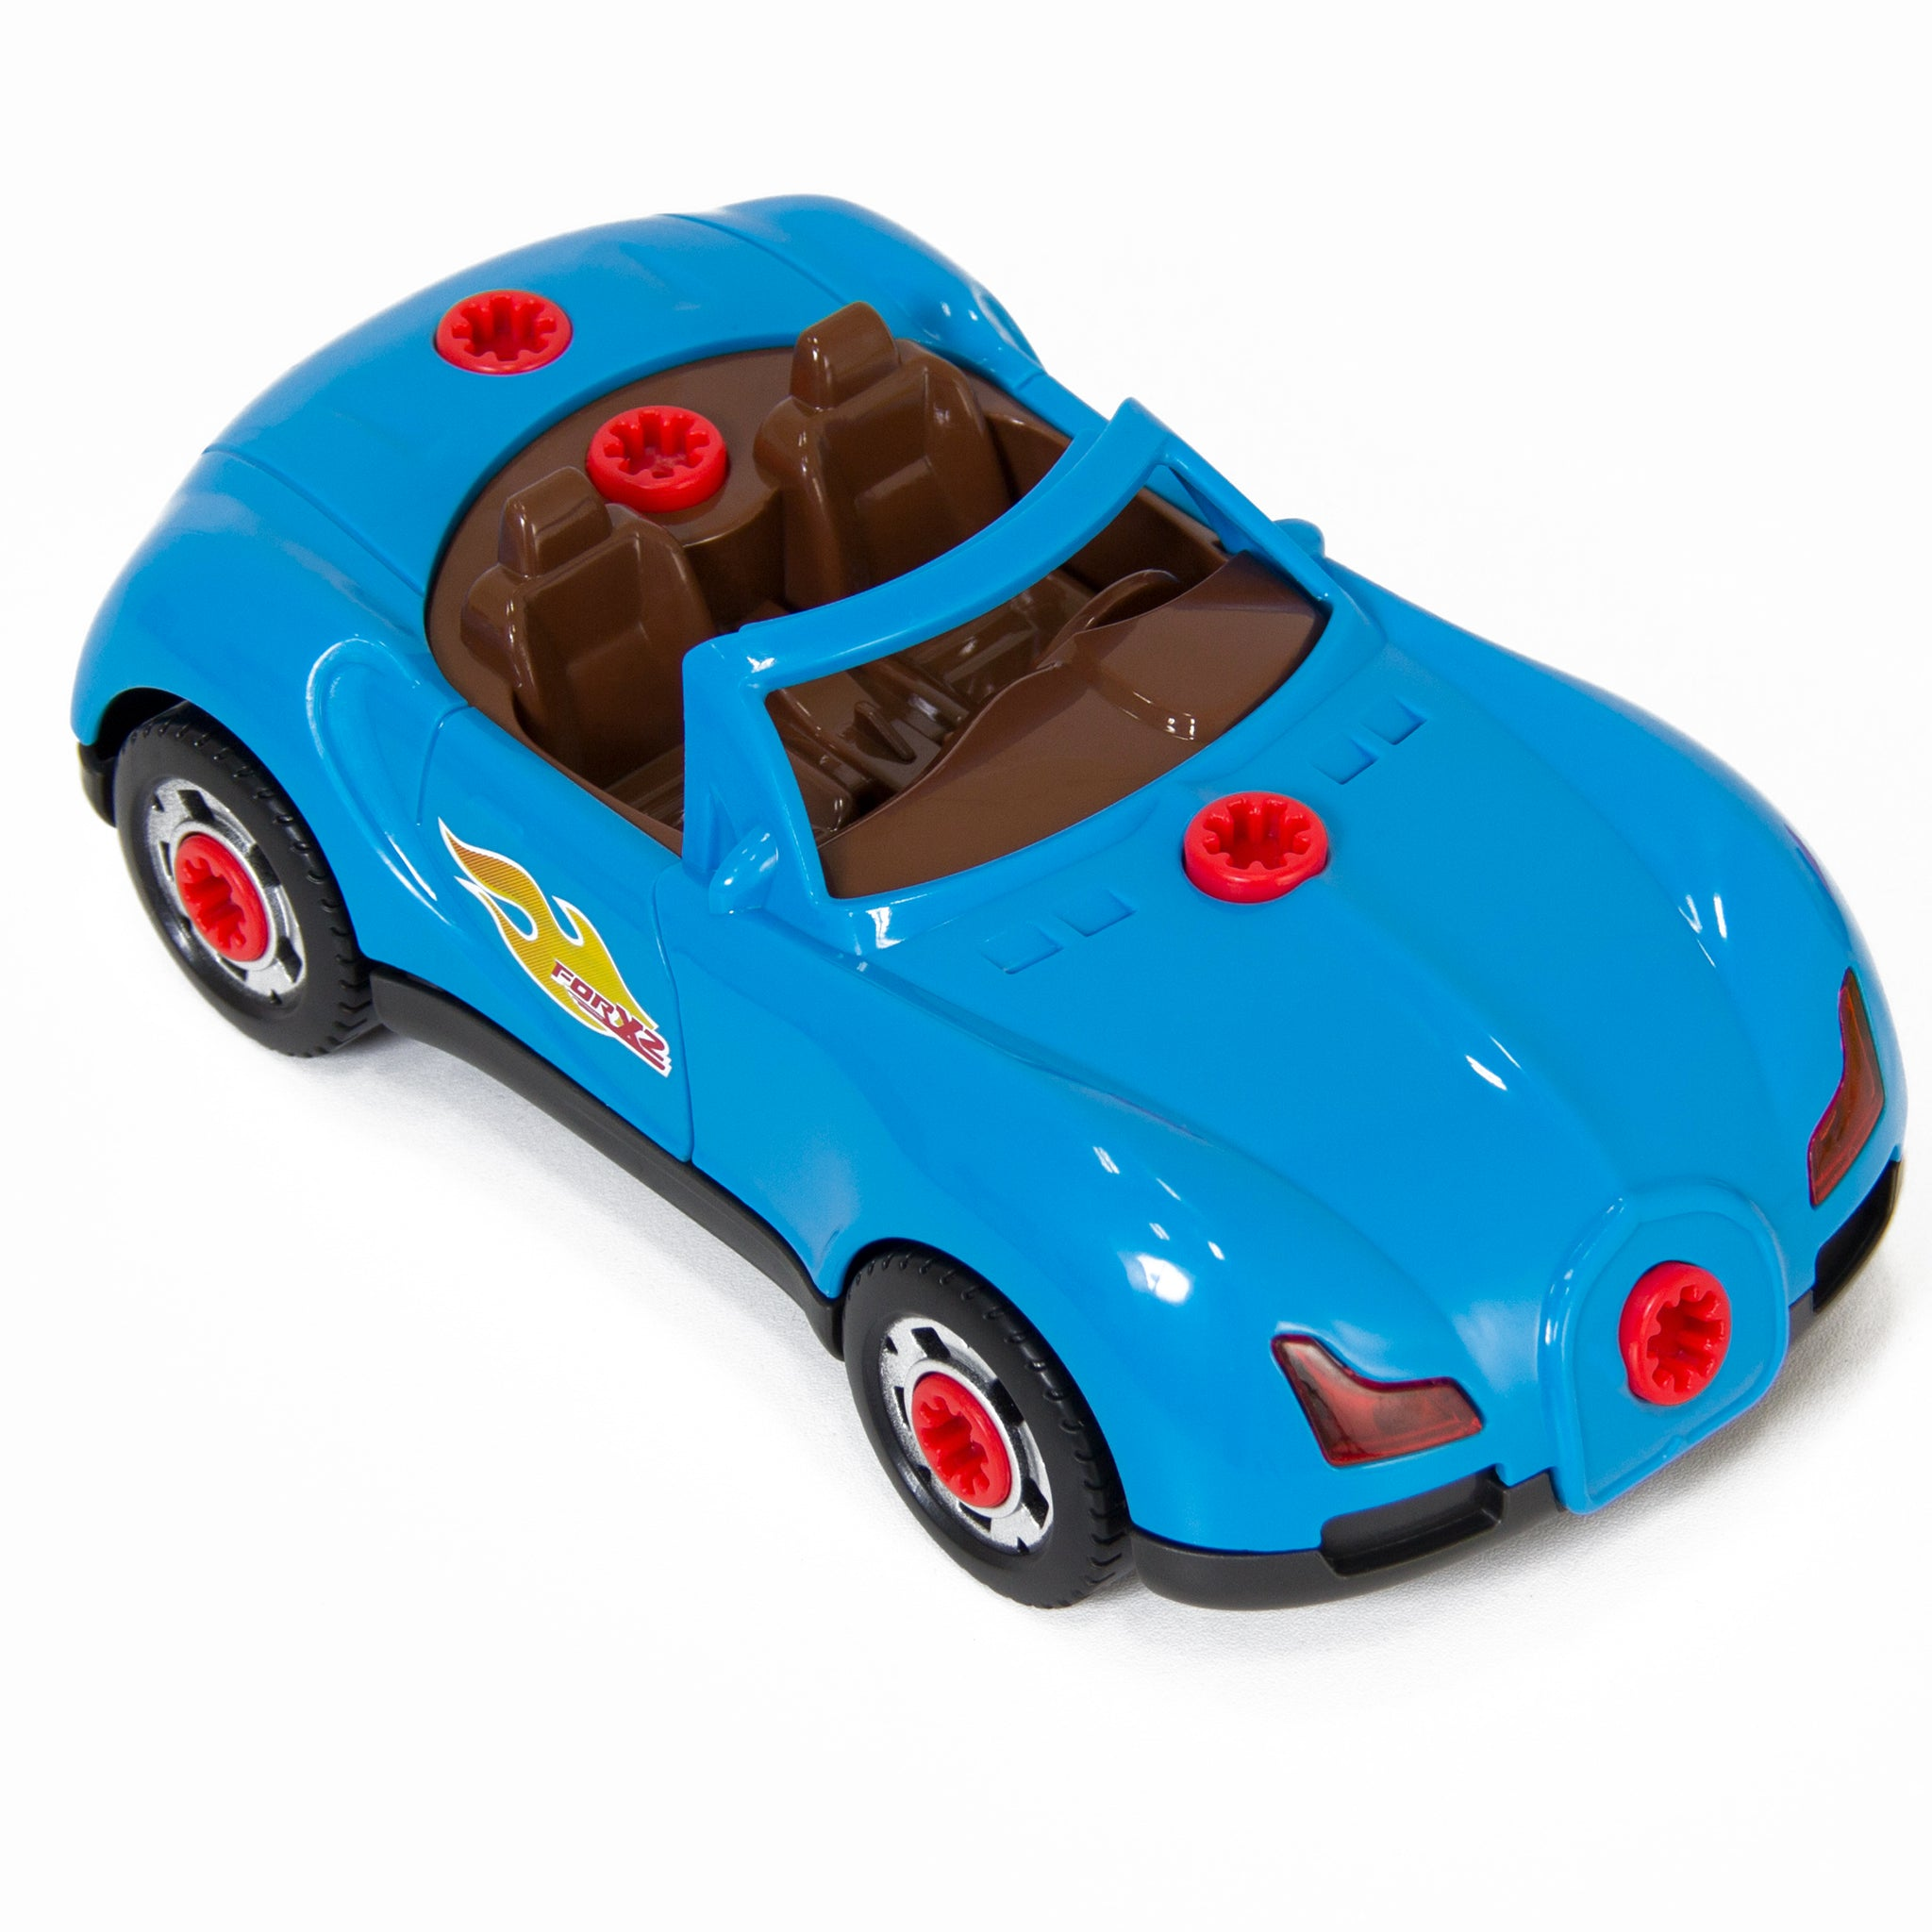 Best Car Toys For Toddlers : Best choice products kids piece assembly take a part